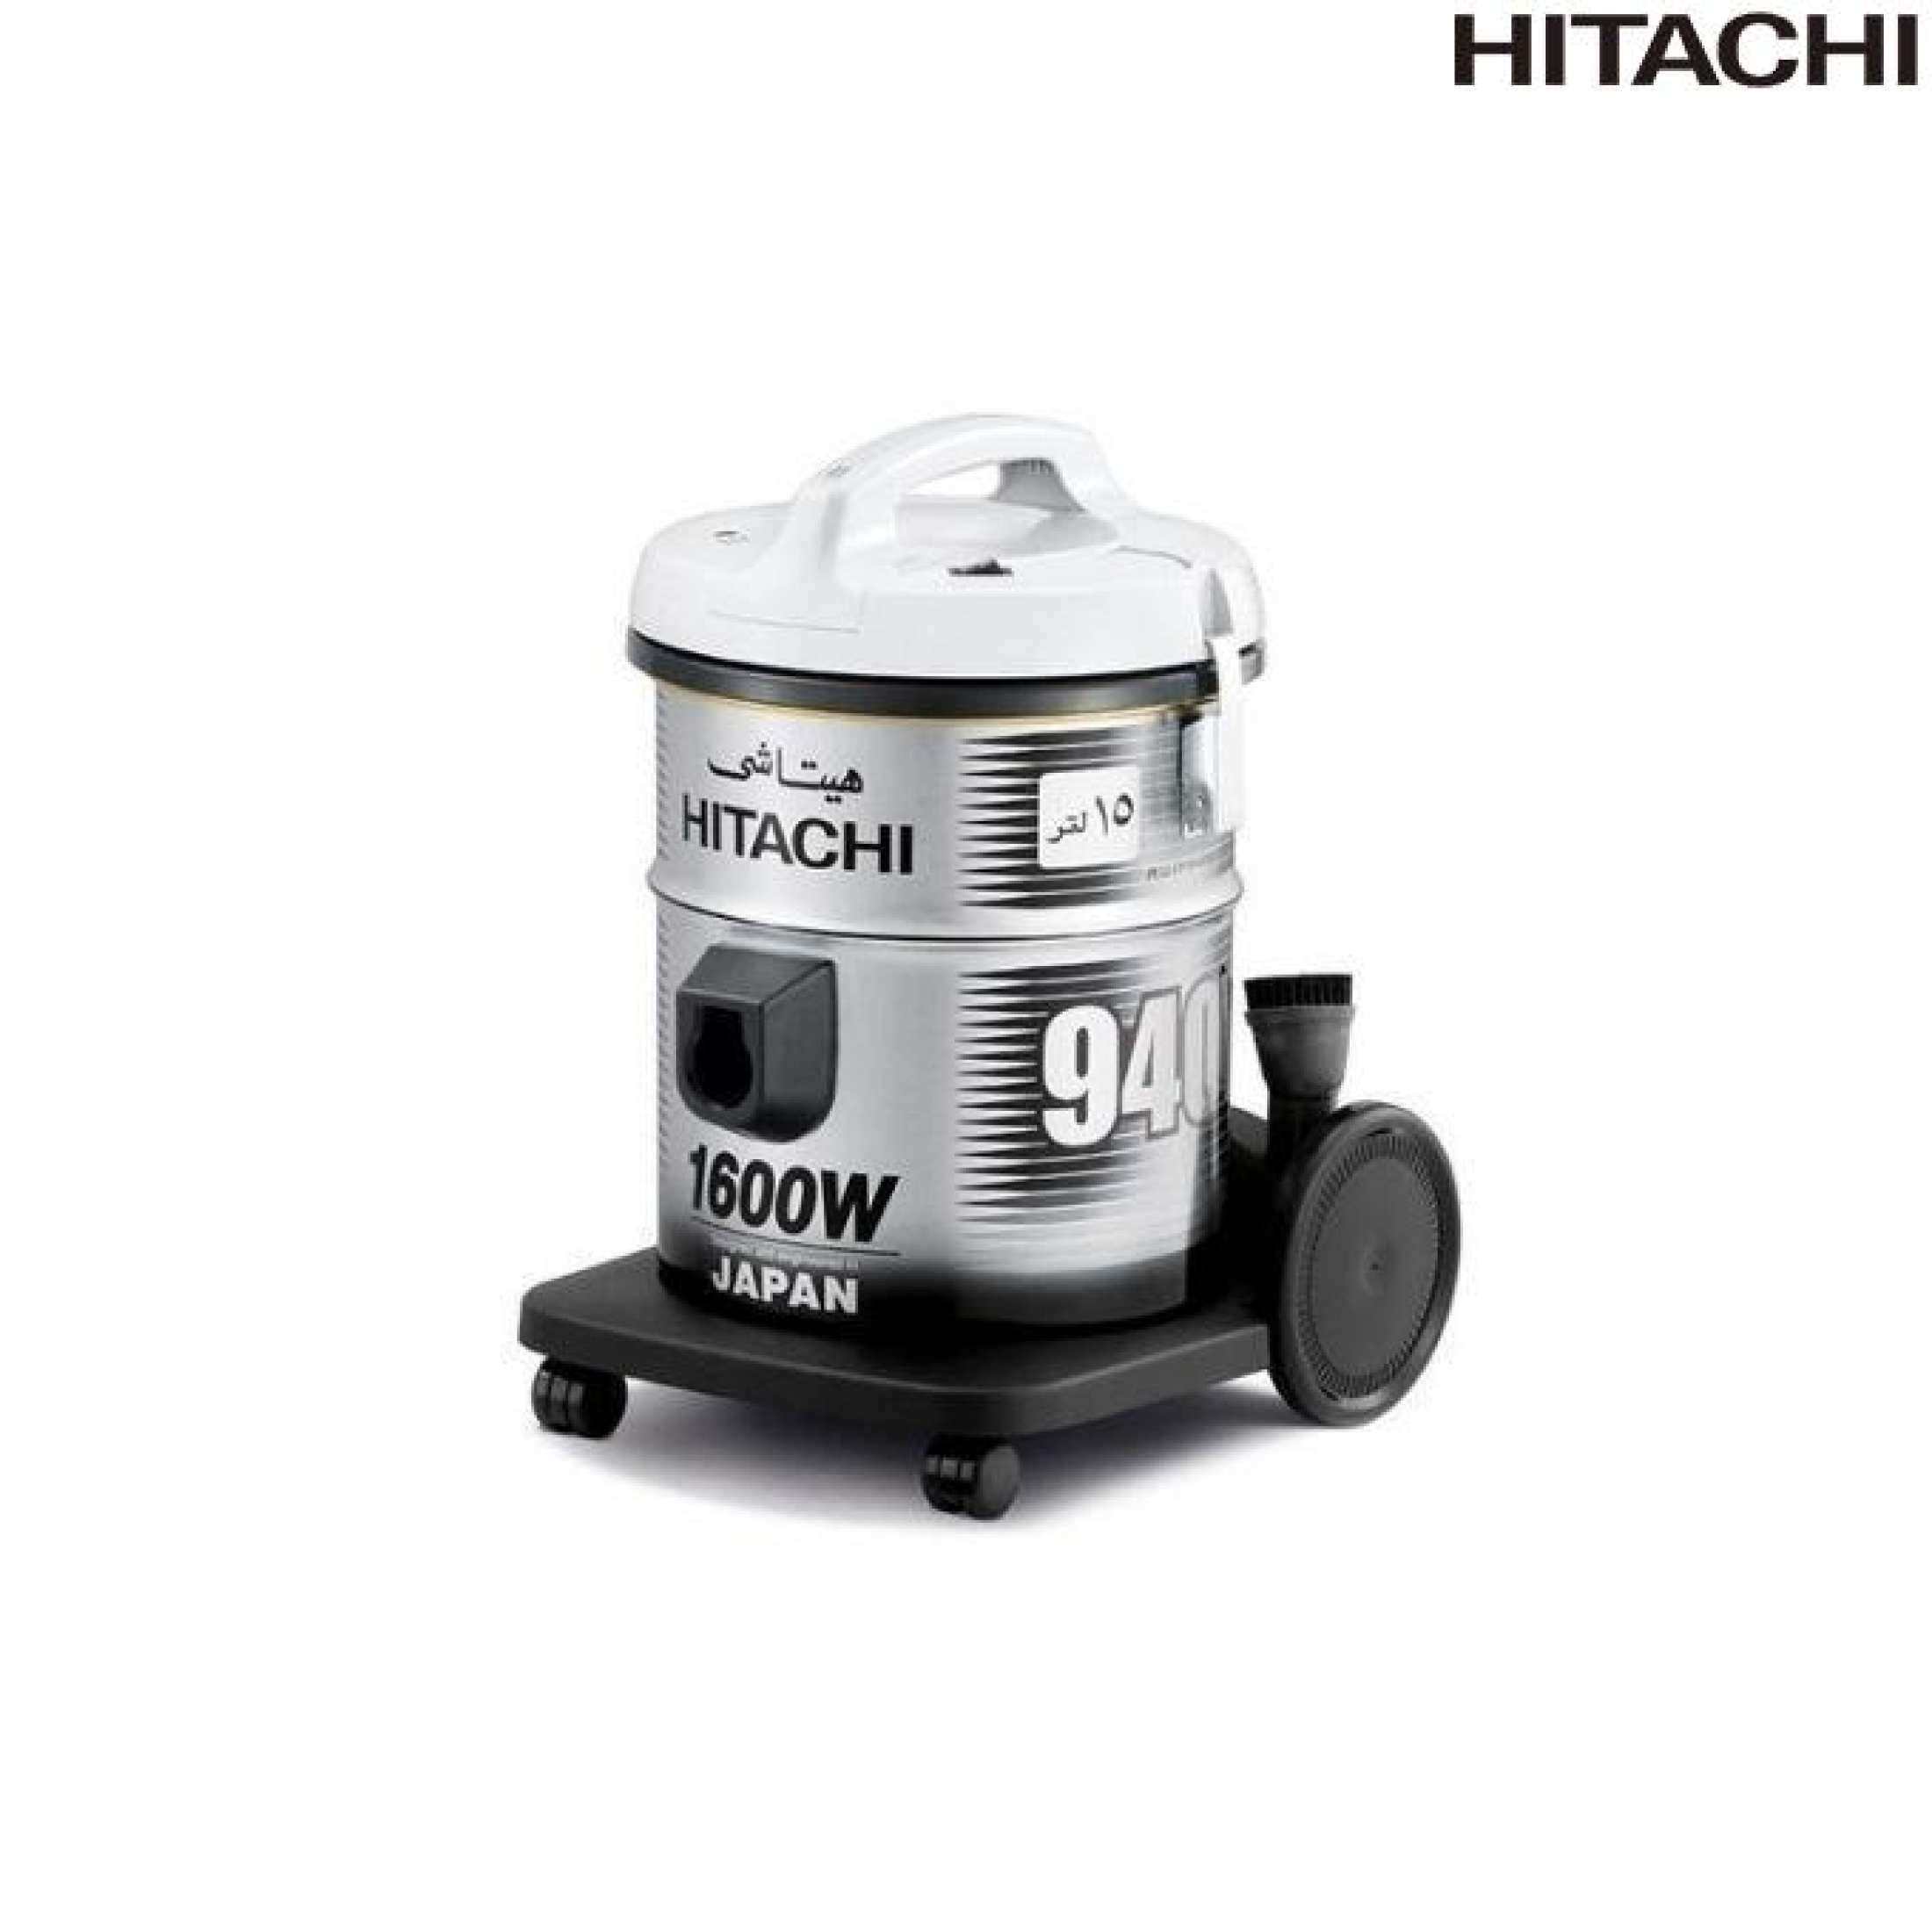 Hitachi Pail Type Bag Vacuum Cleaner Grey Cv940(Pg)